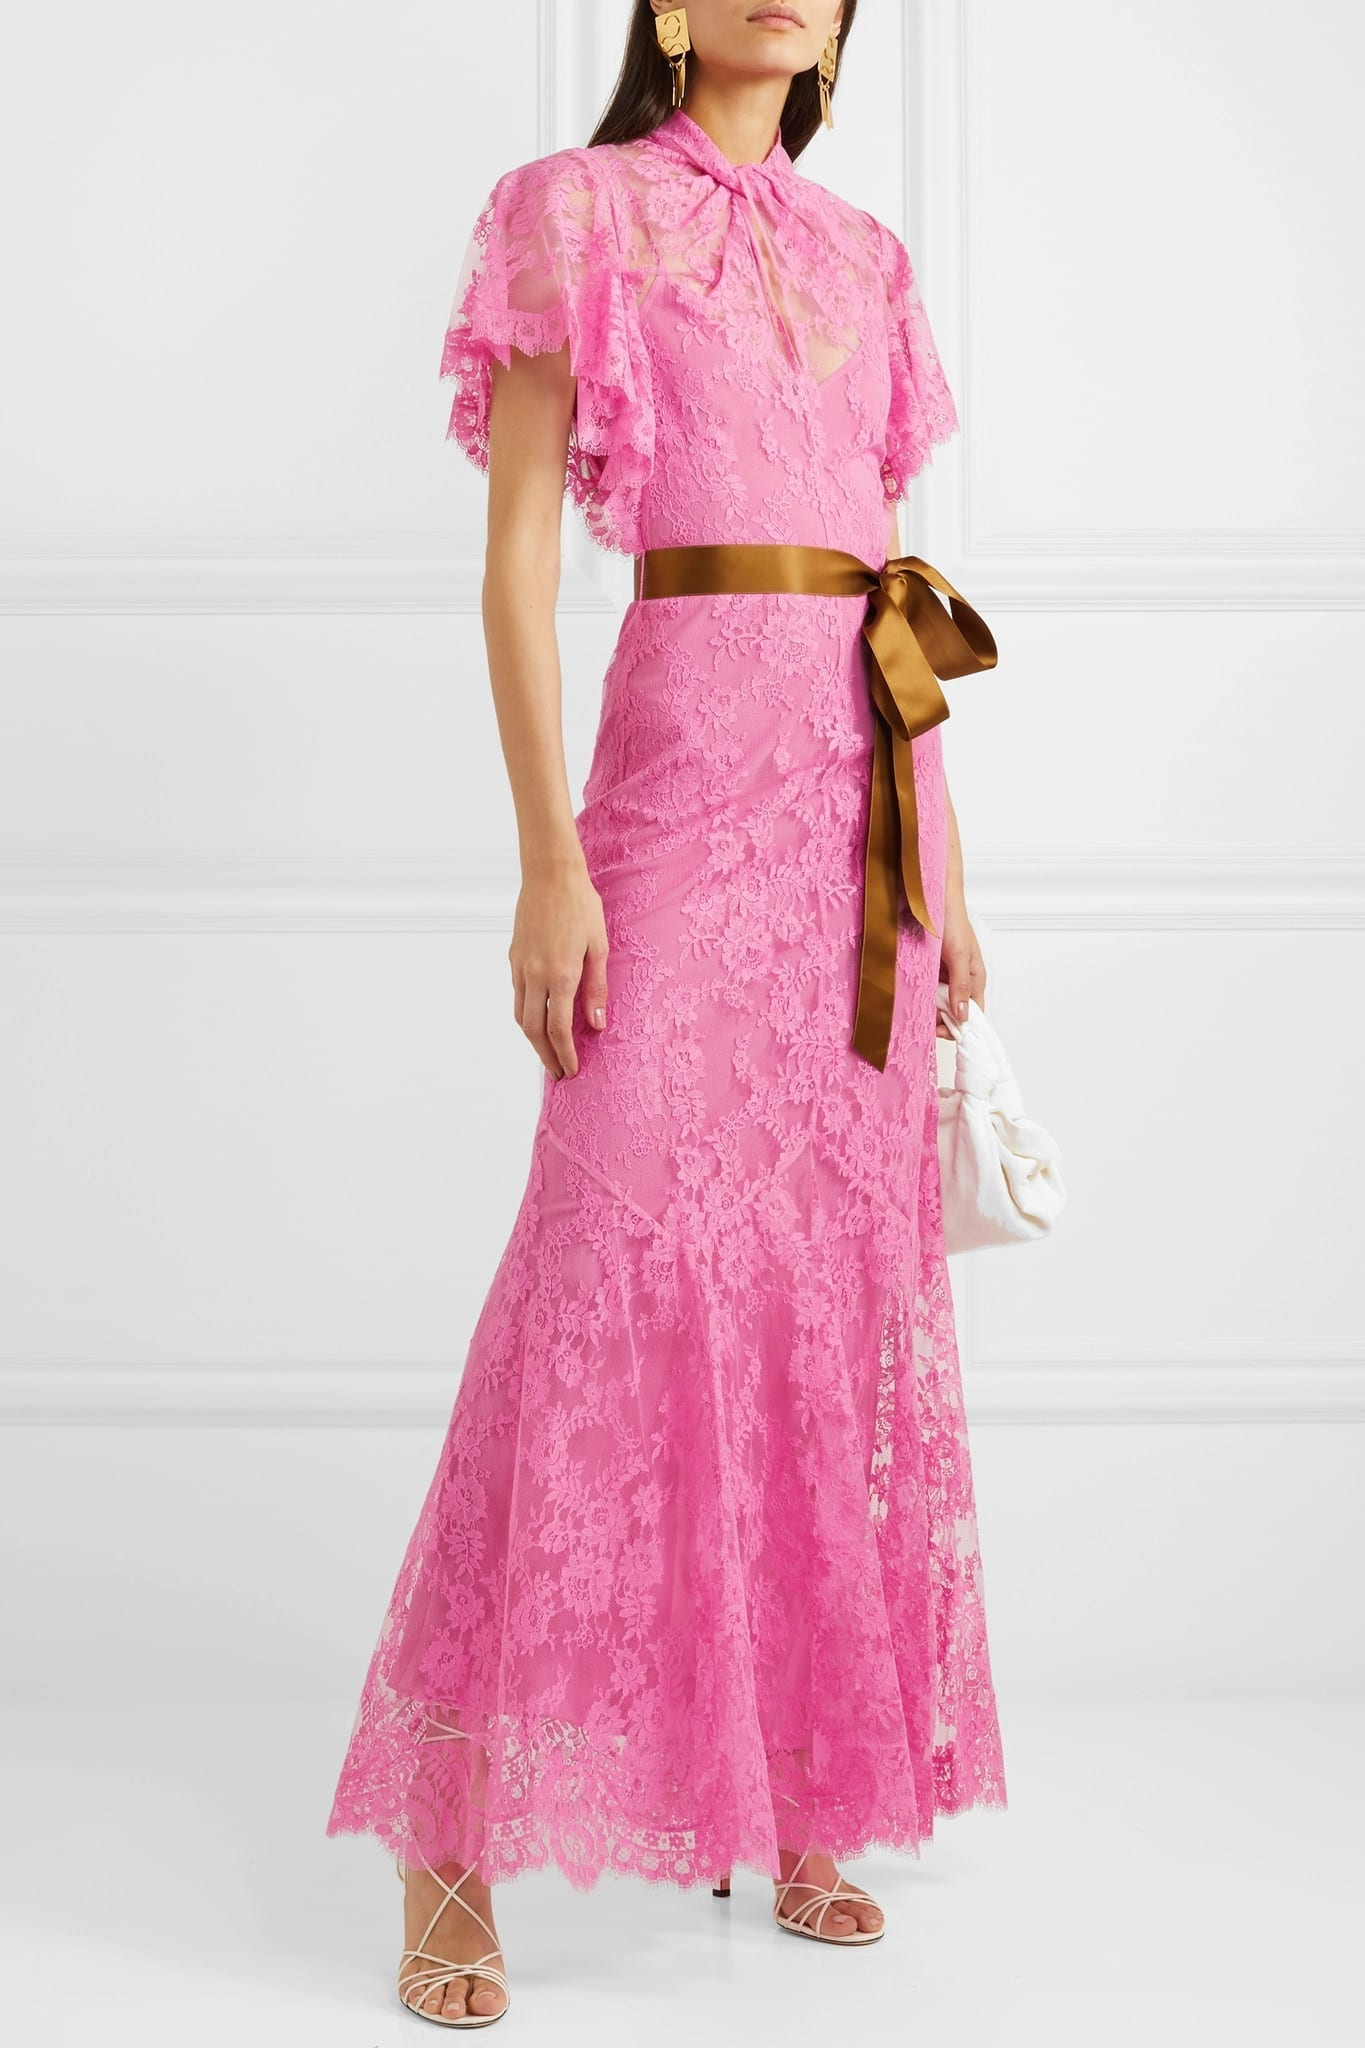 ERDEM Celestina Satin-trimmed Cotton-blend Lace Gown